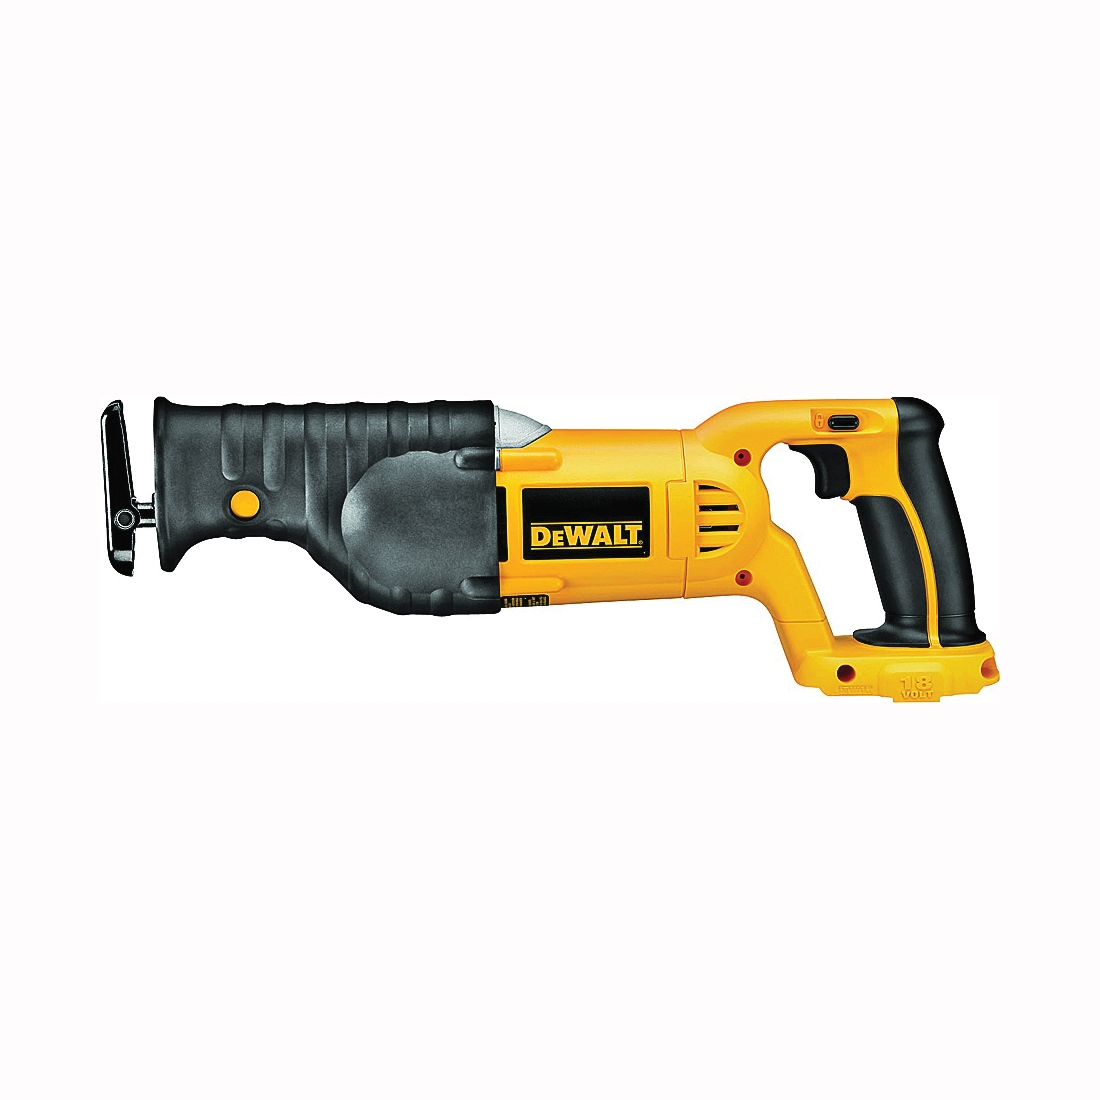 Picture of DeWALT DC385B Reciprocating Saw, Bare Tool, 18 V Battery, 2.4 Ah, 1-1/8 in L Stroke, 0 to 3000 SPM